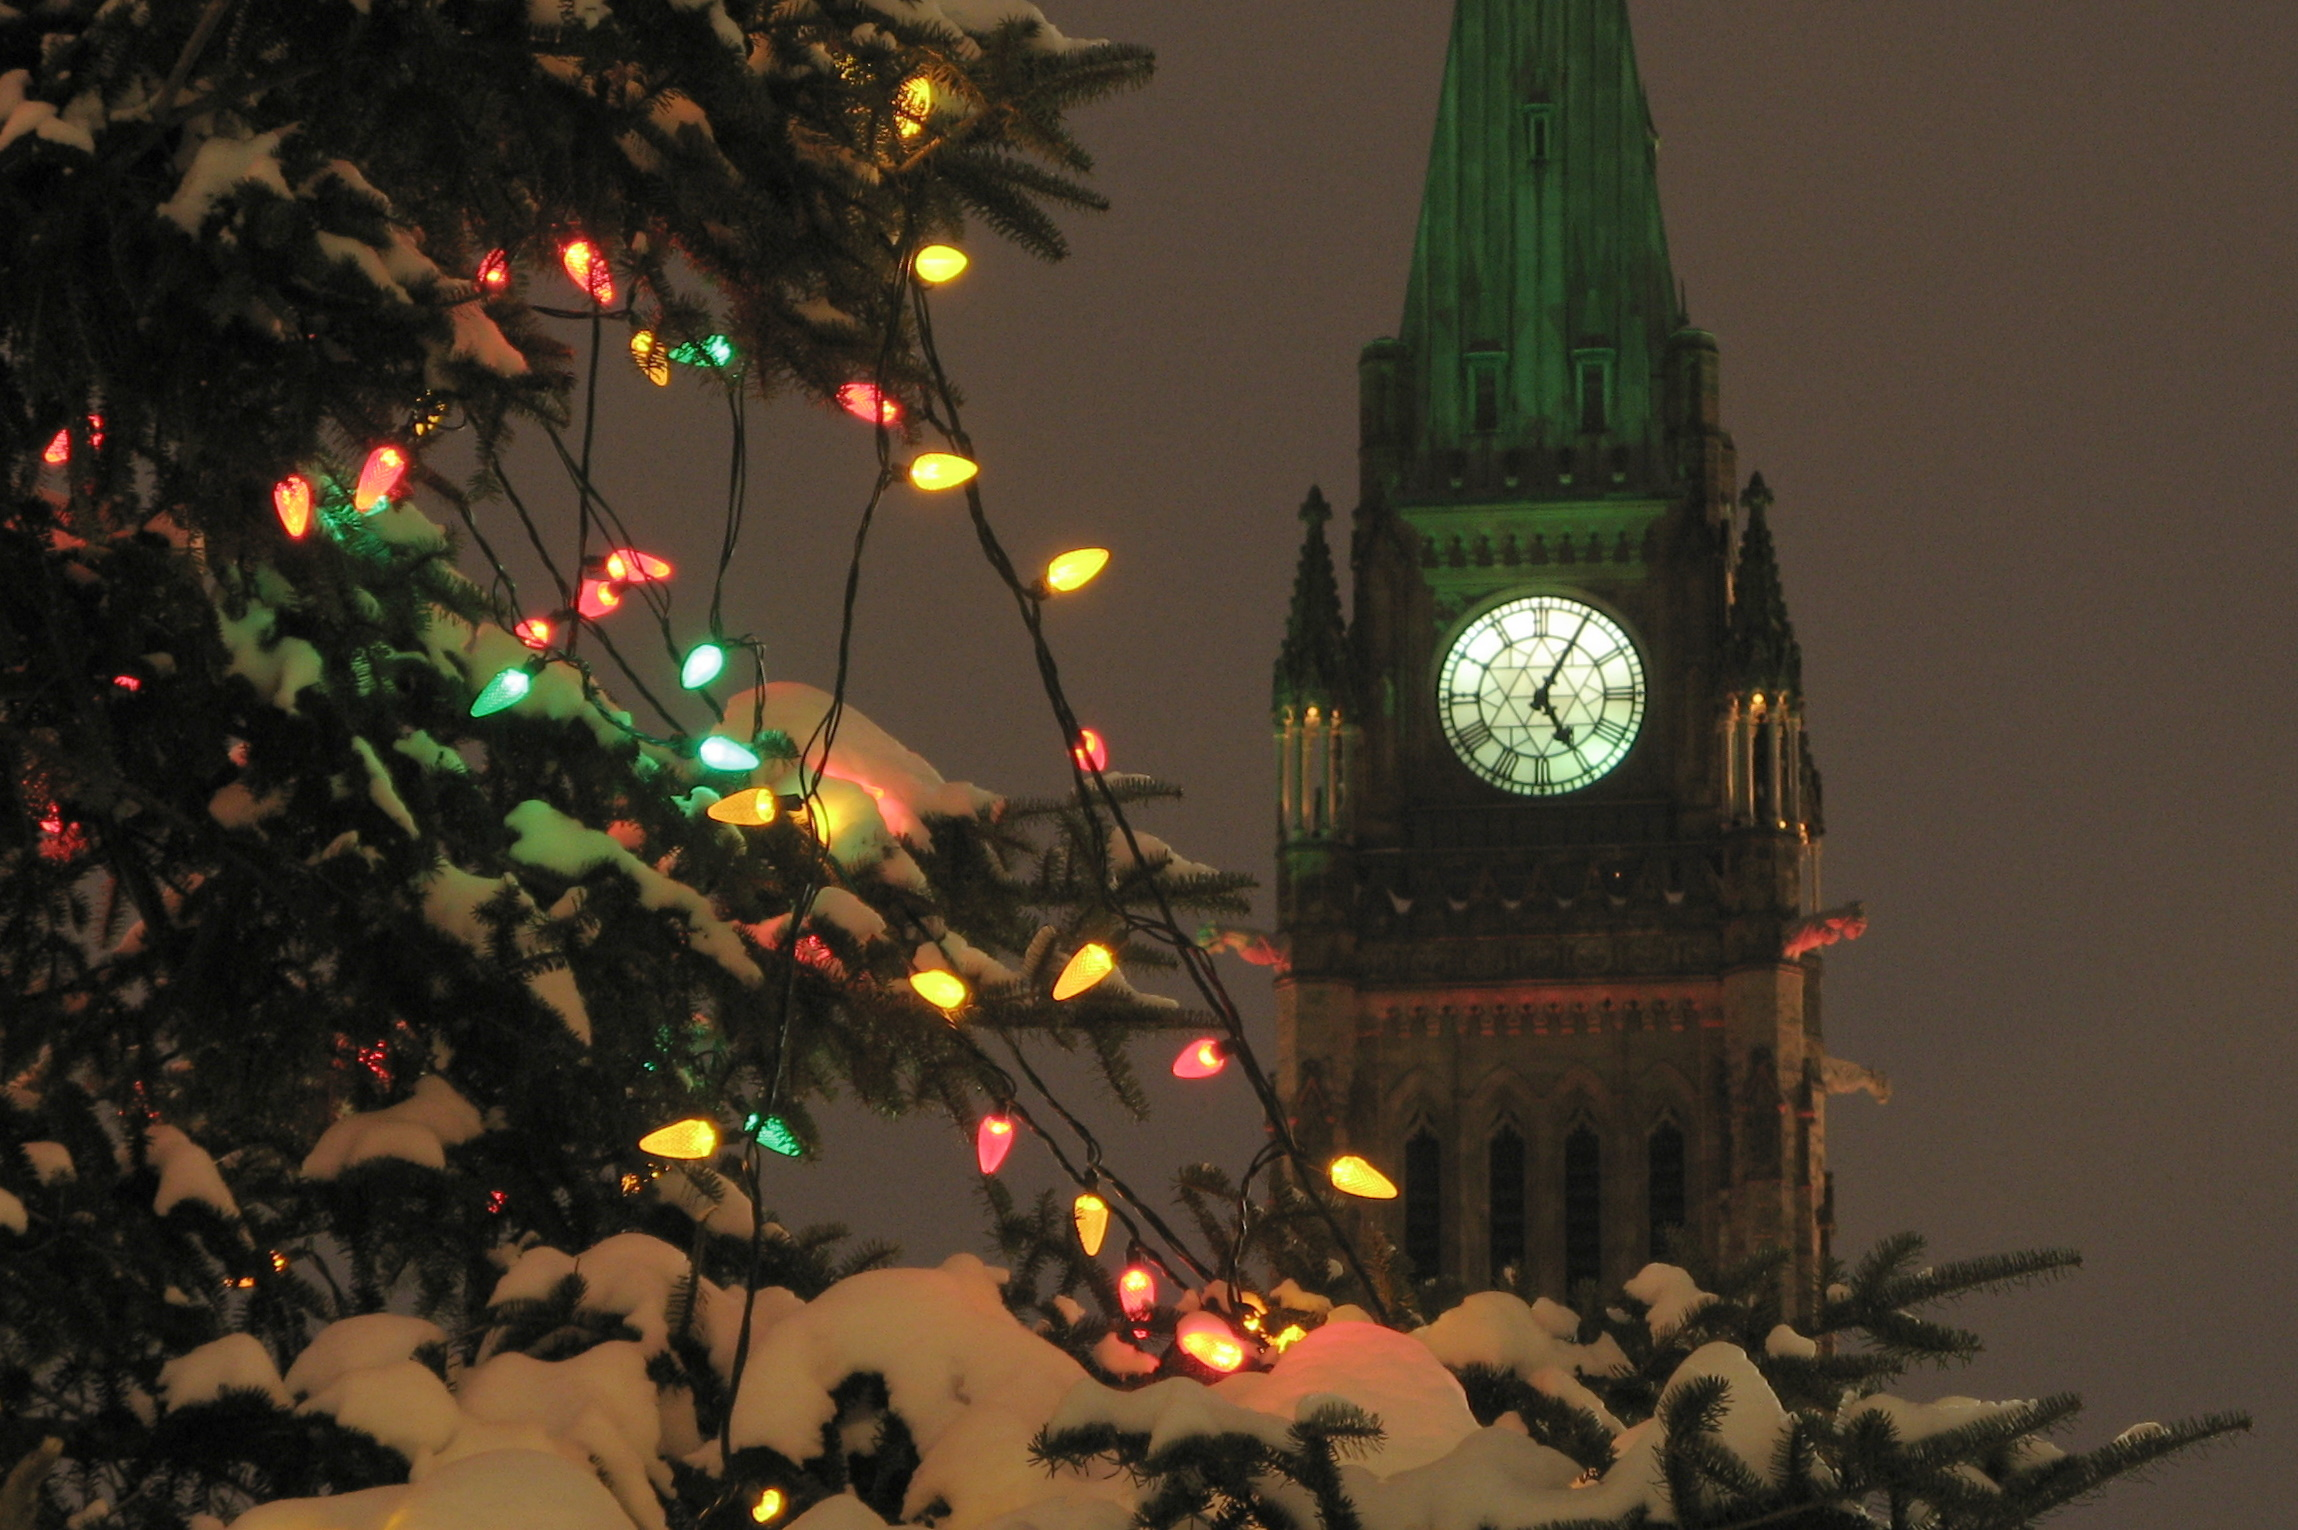 File:Peace tower at Christmas 2.jpg - Wikimedia Commons